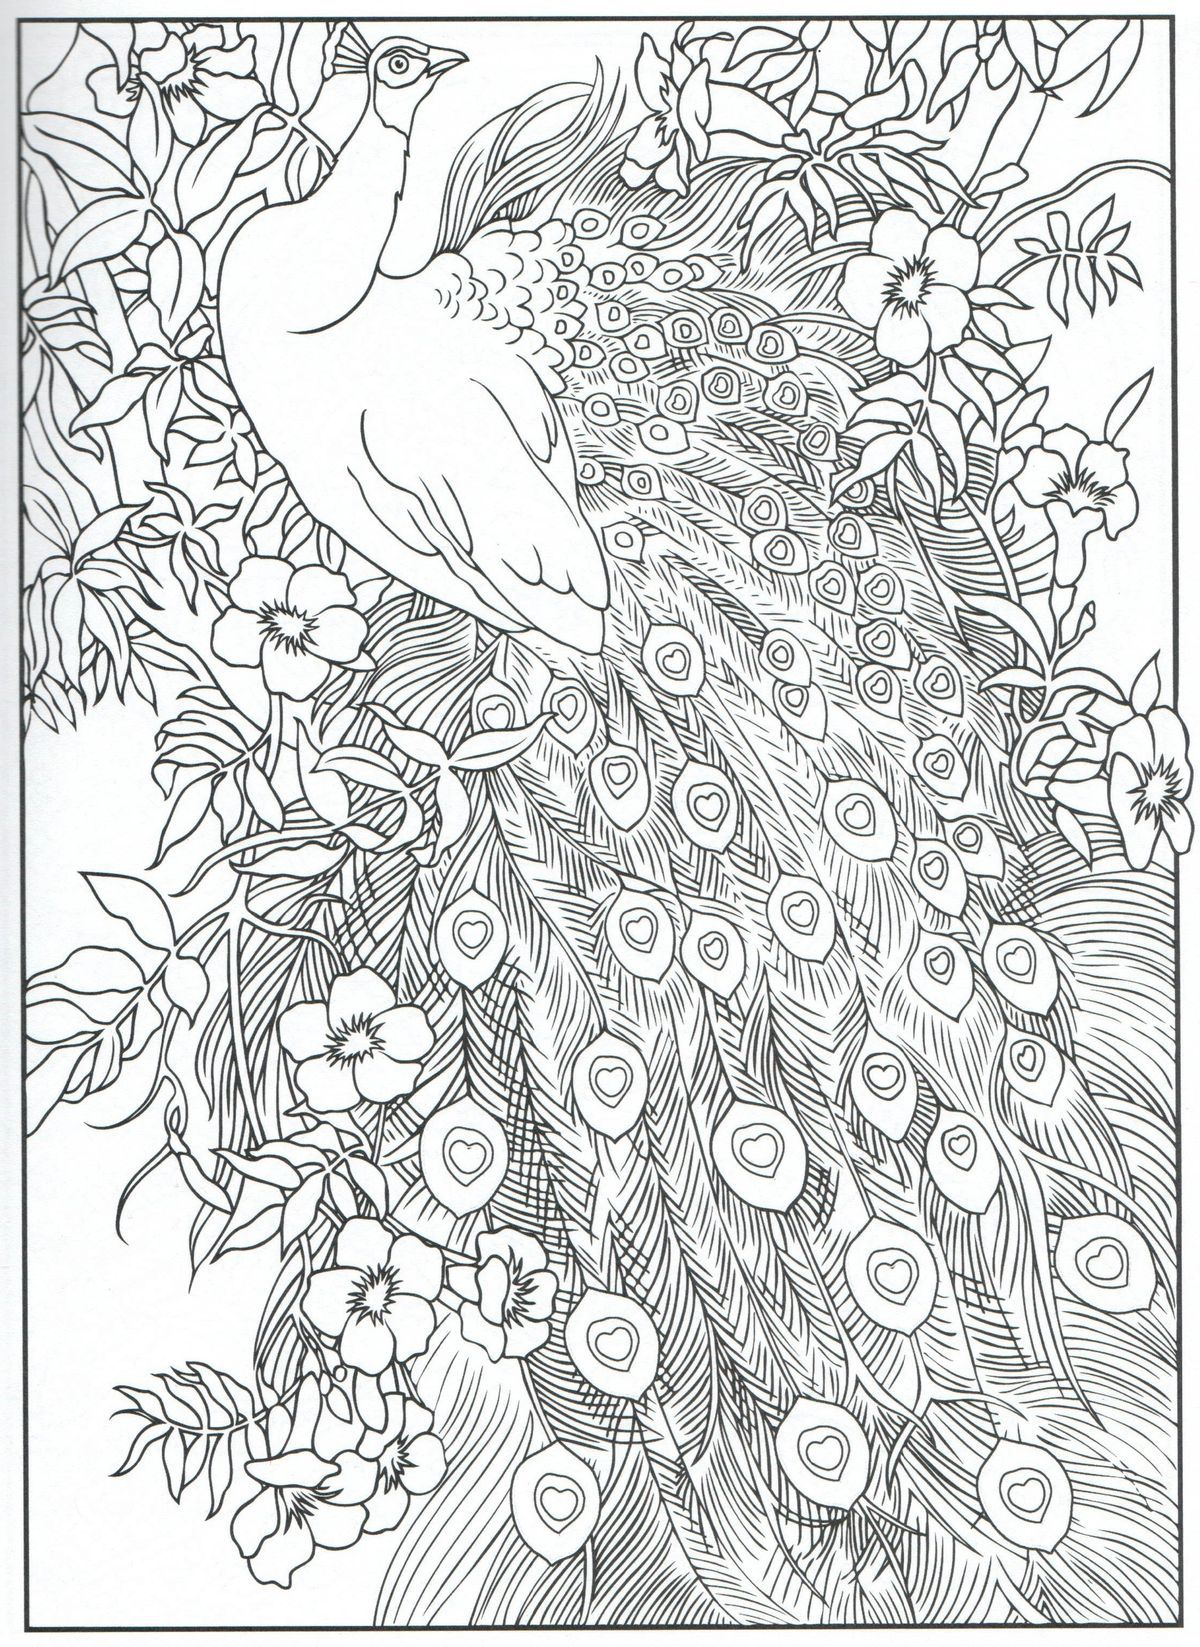 Peacock Coloring Pages Designs Coloring Books Mandala Coloring Pages